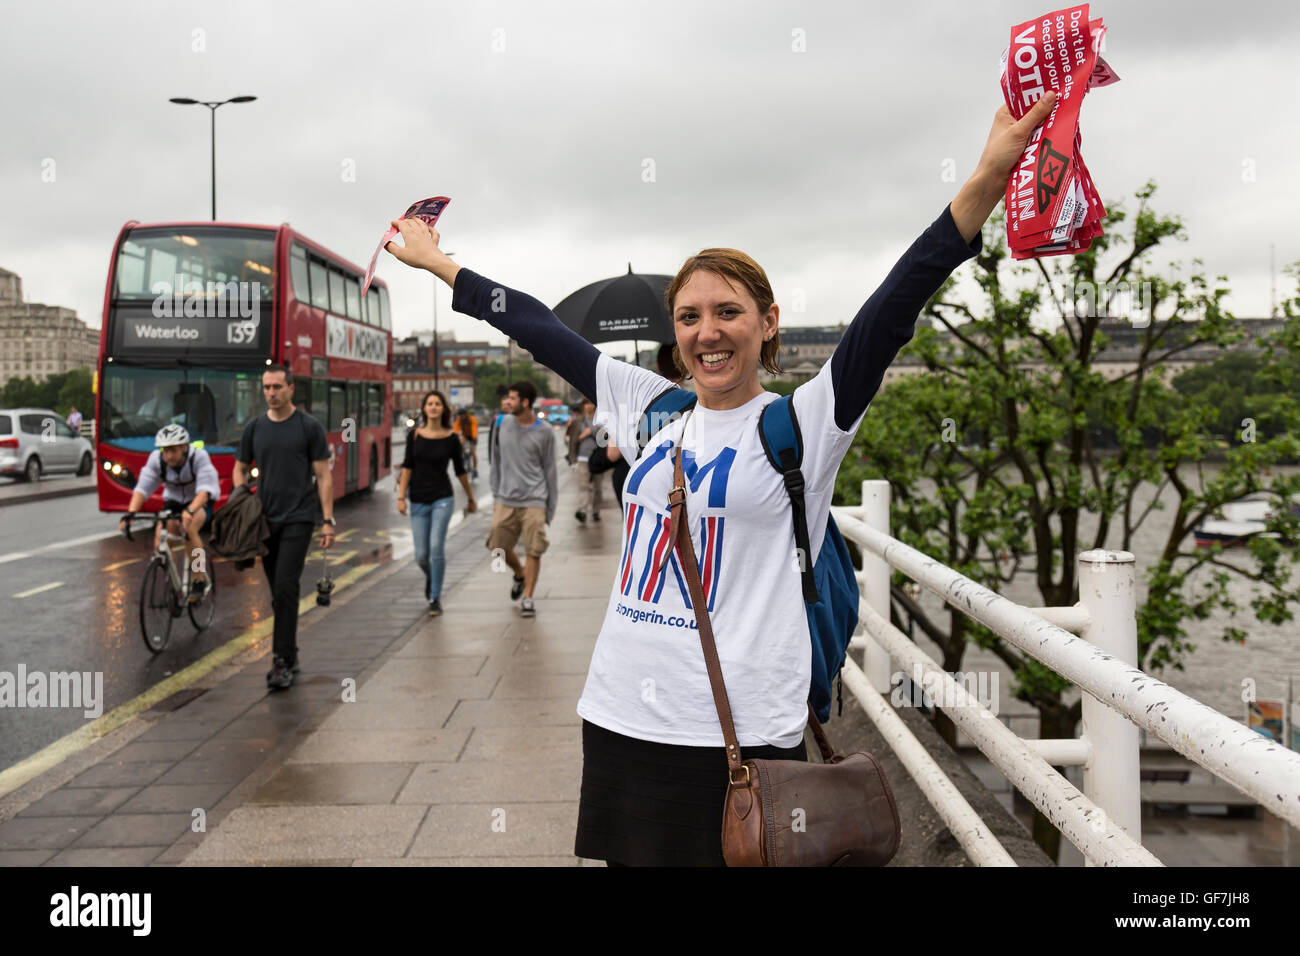 London, England - June 2016. A woman handing out Vote- Remain brochures to pedestrians - Stock Image